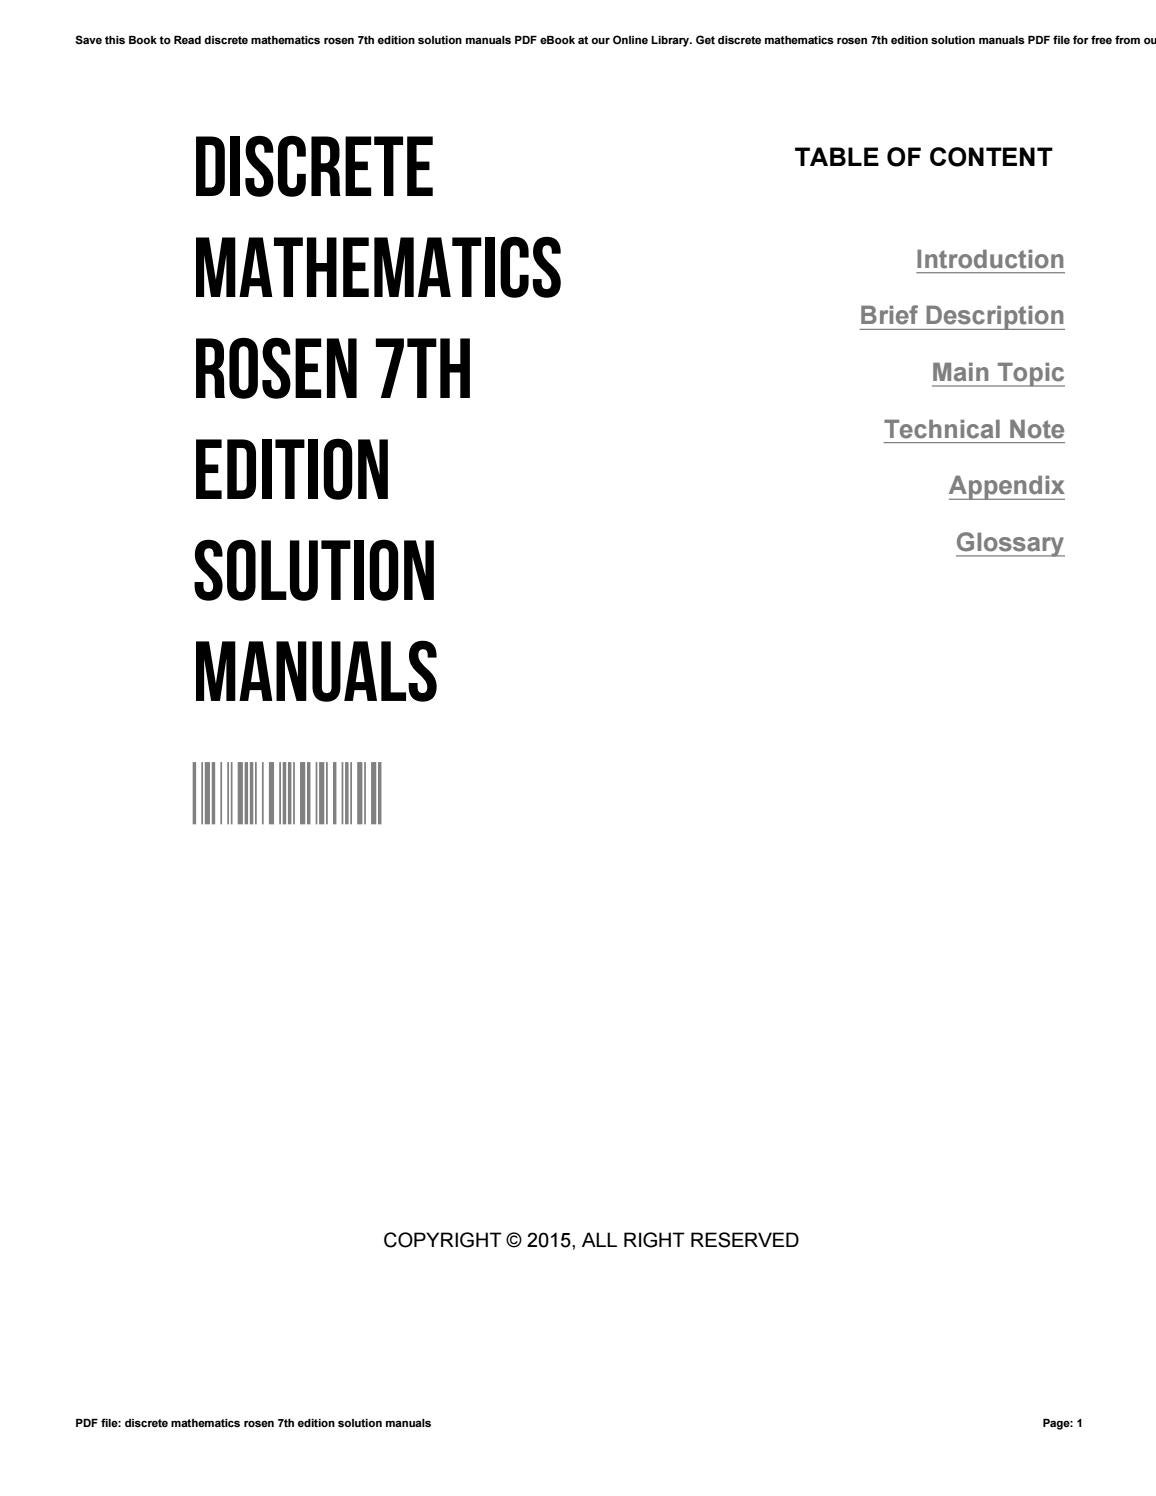 Discrete mathematics rosen 7th edition solution manuals by